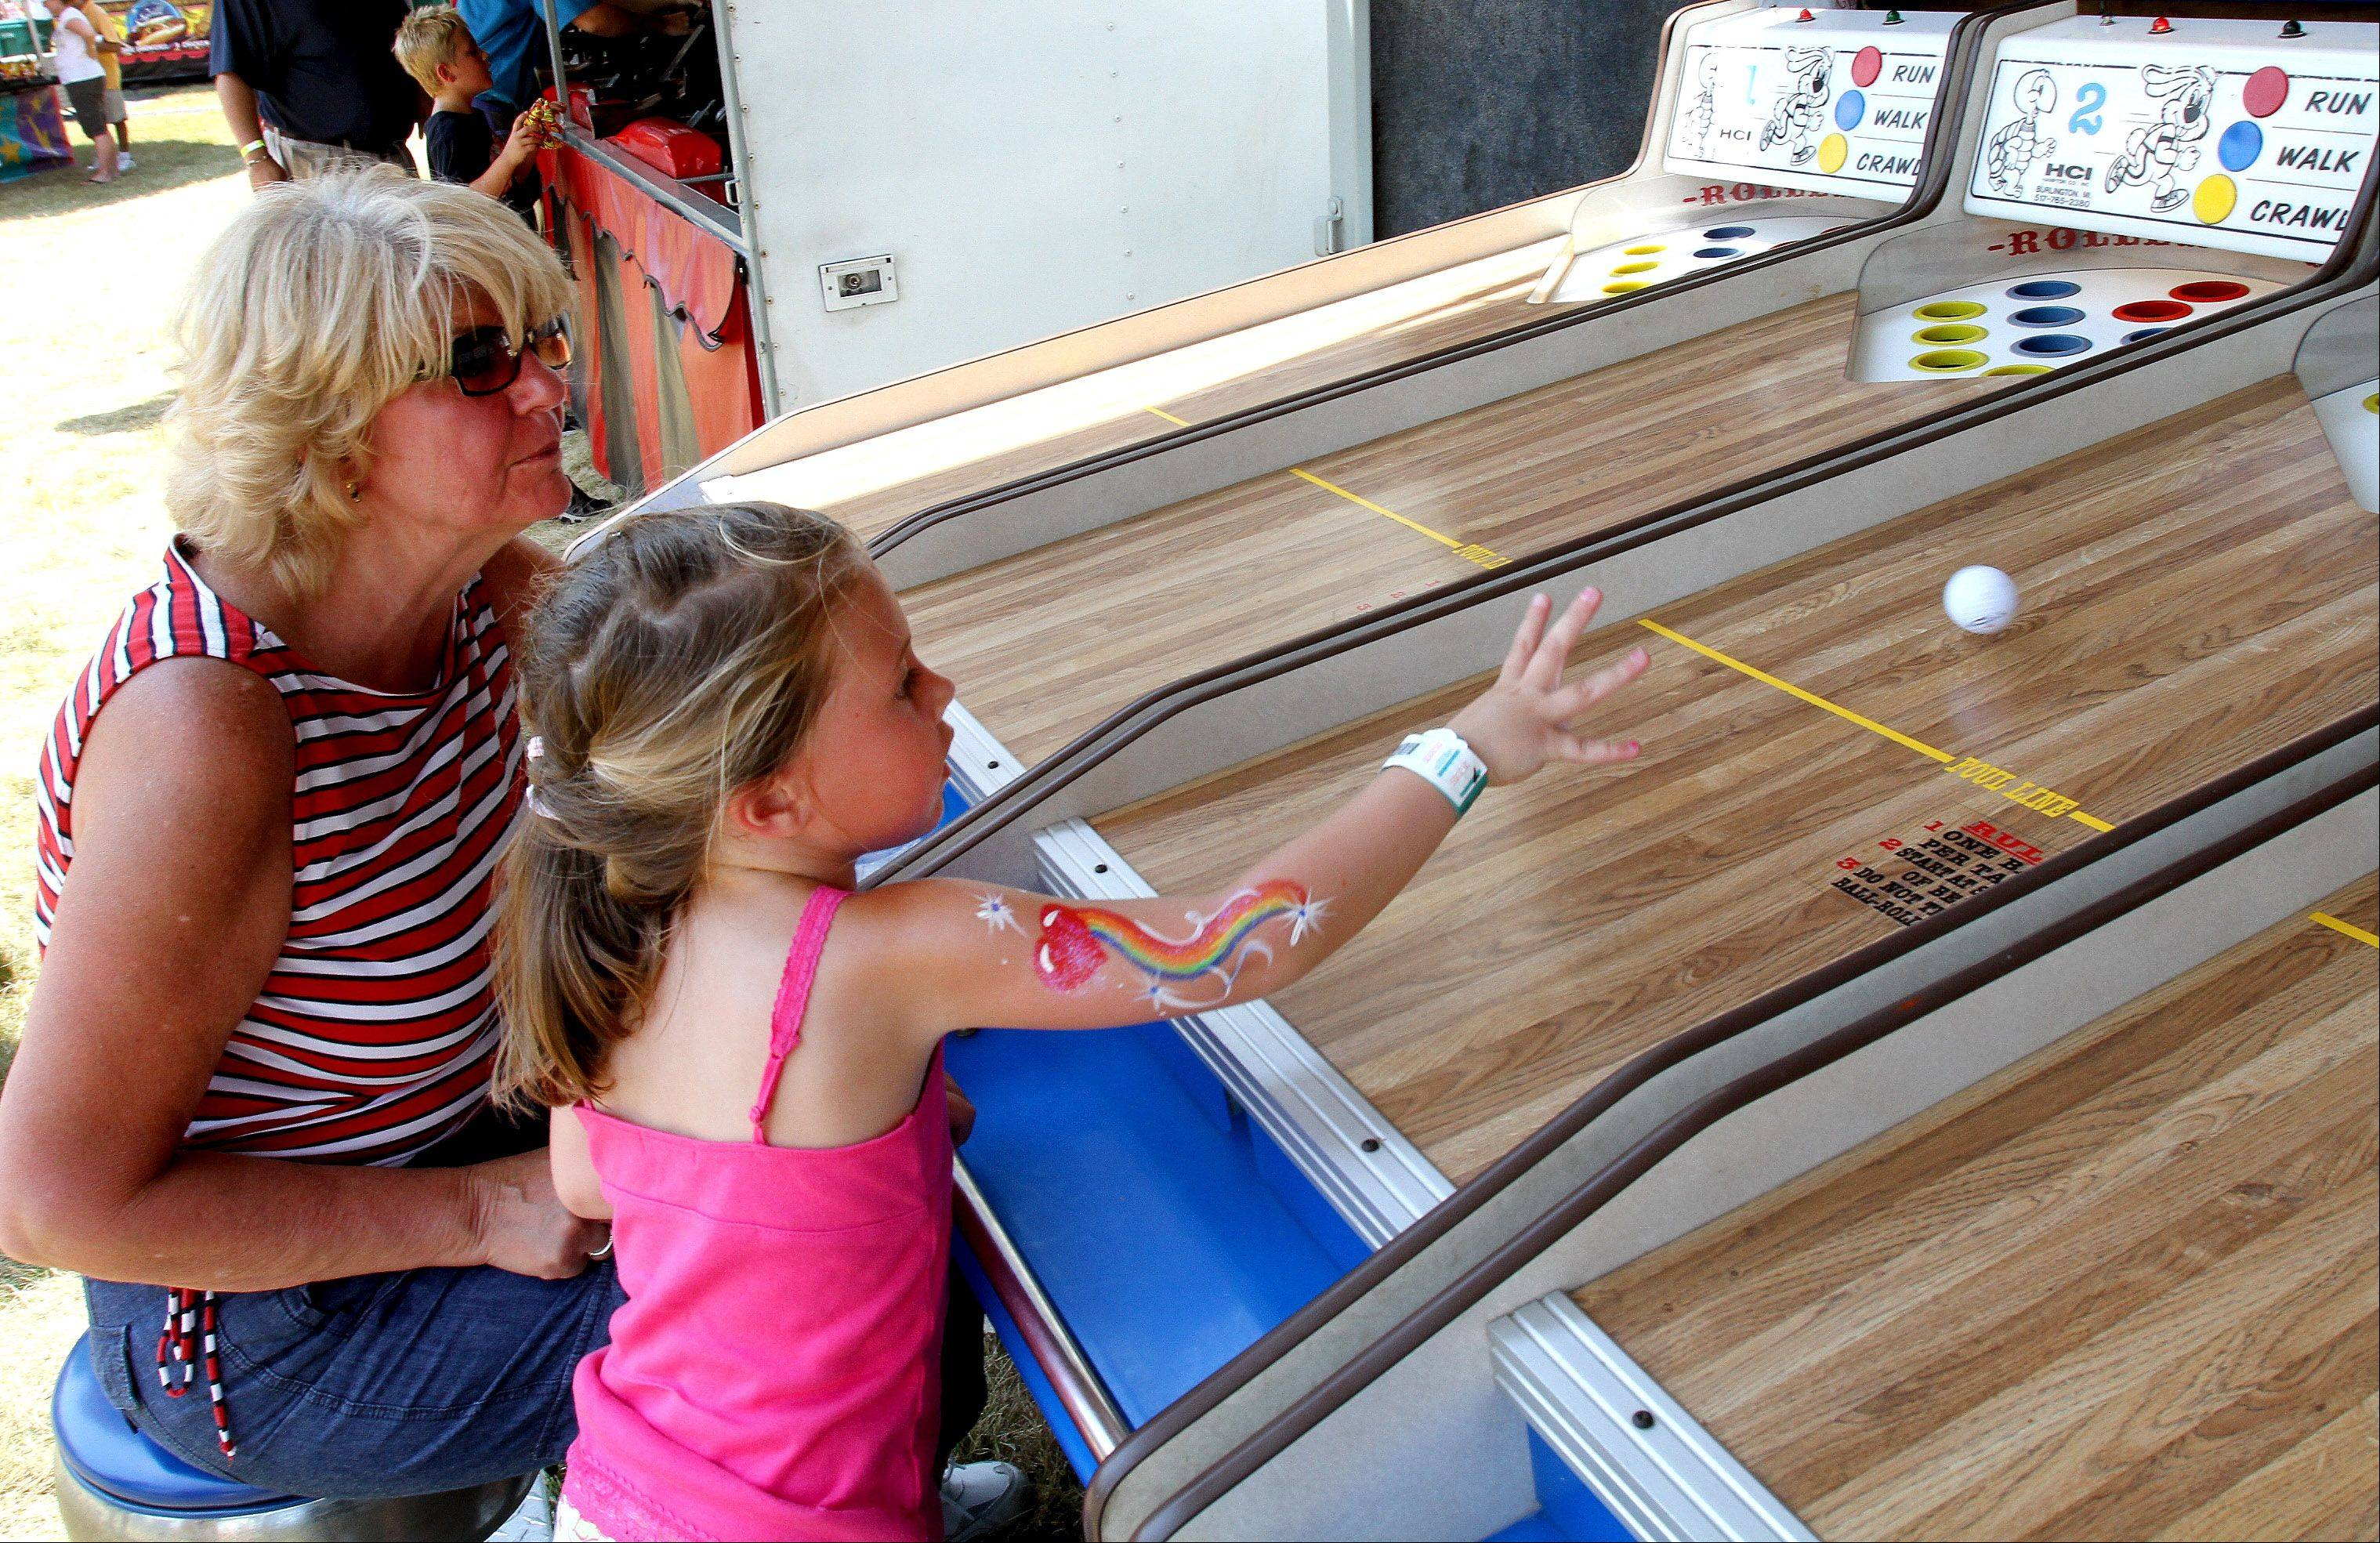 Madison Turek, 4 of Lombard, plays the Derby Race game with her grandma Irene Turek at the Taste of Lombard on Wednesday.